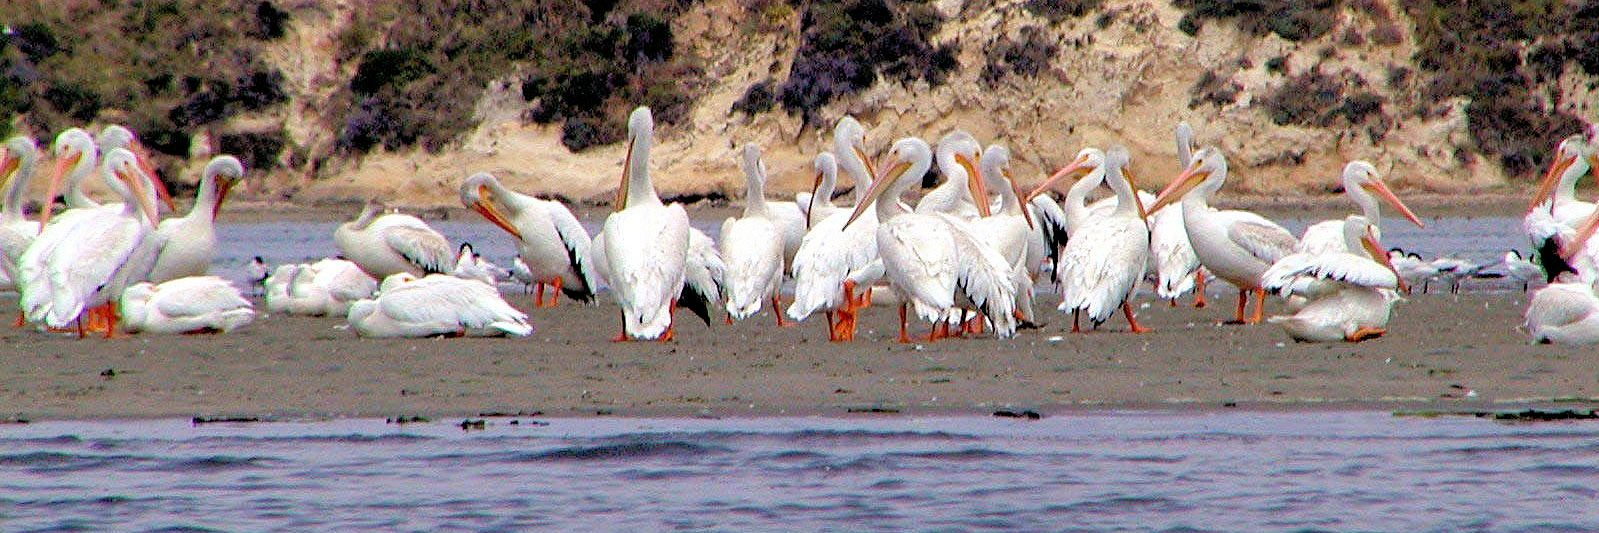 white_pelicans_cropped2